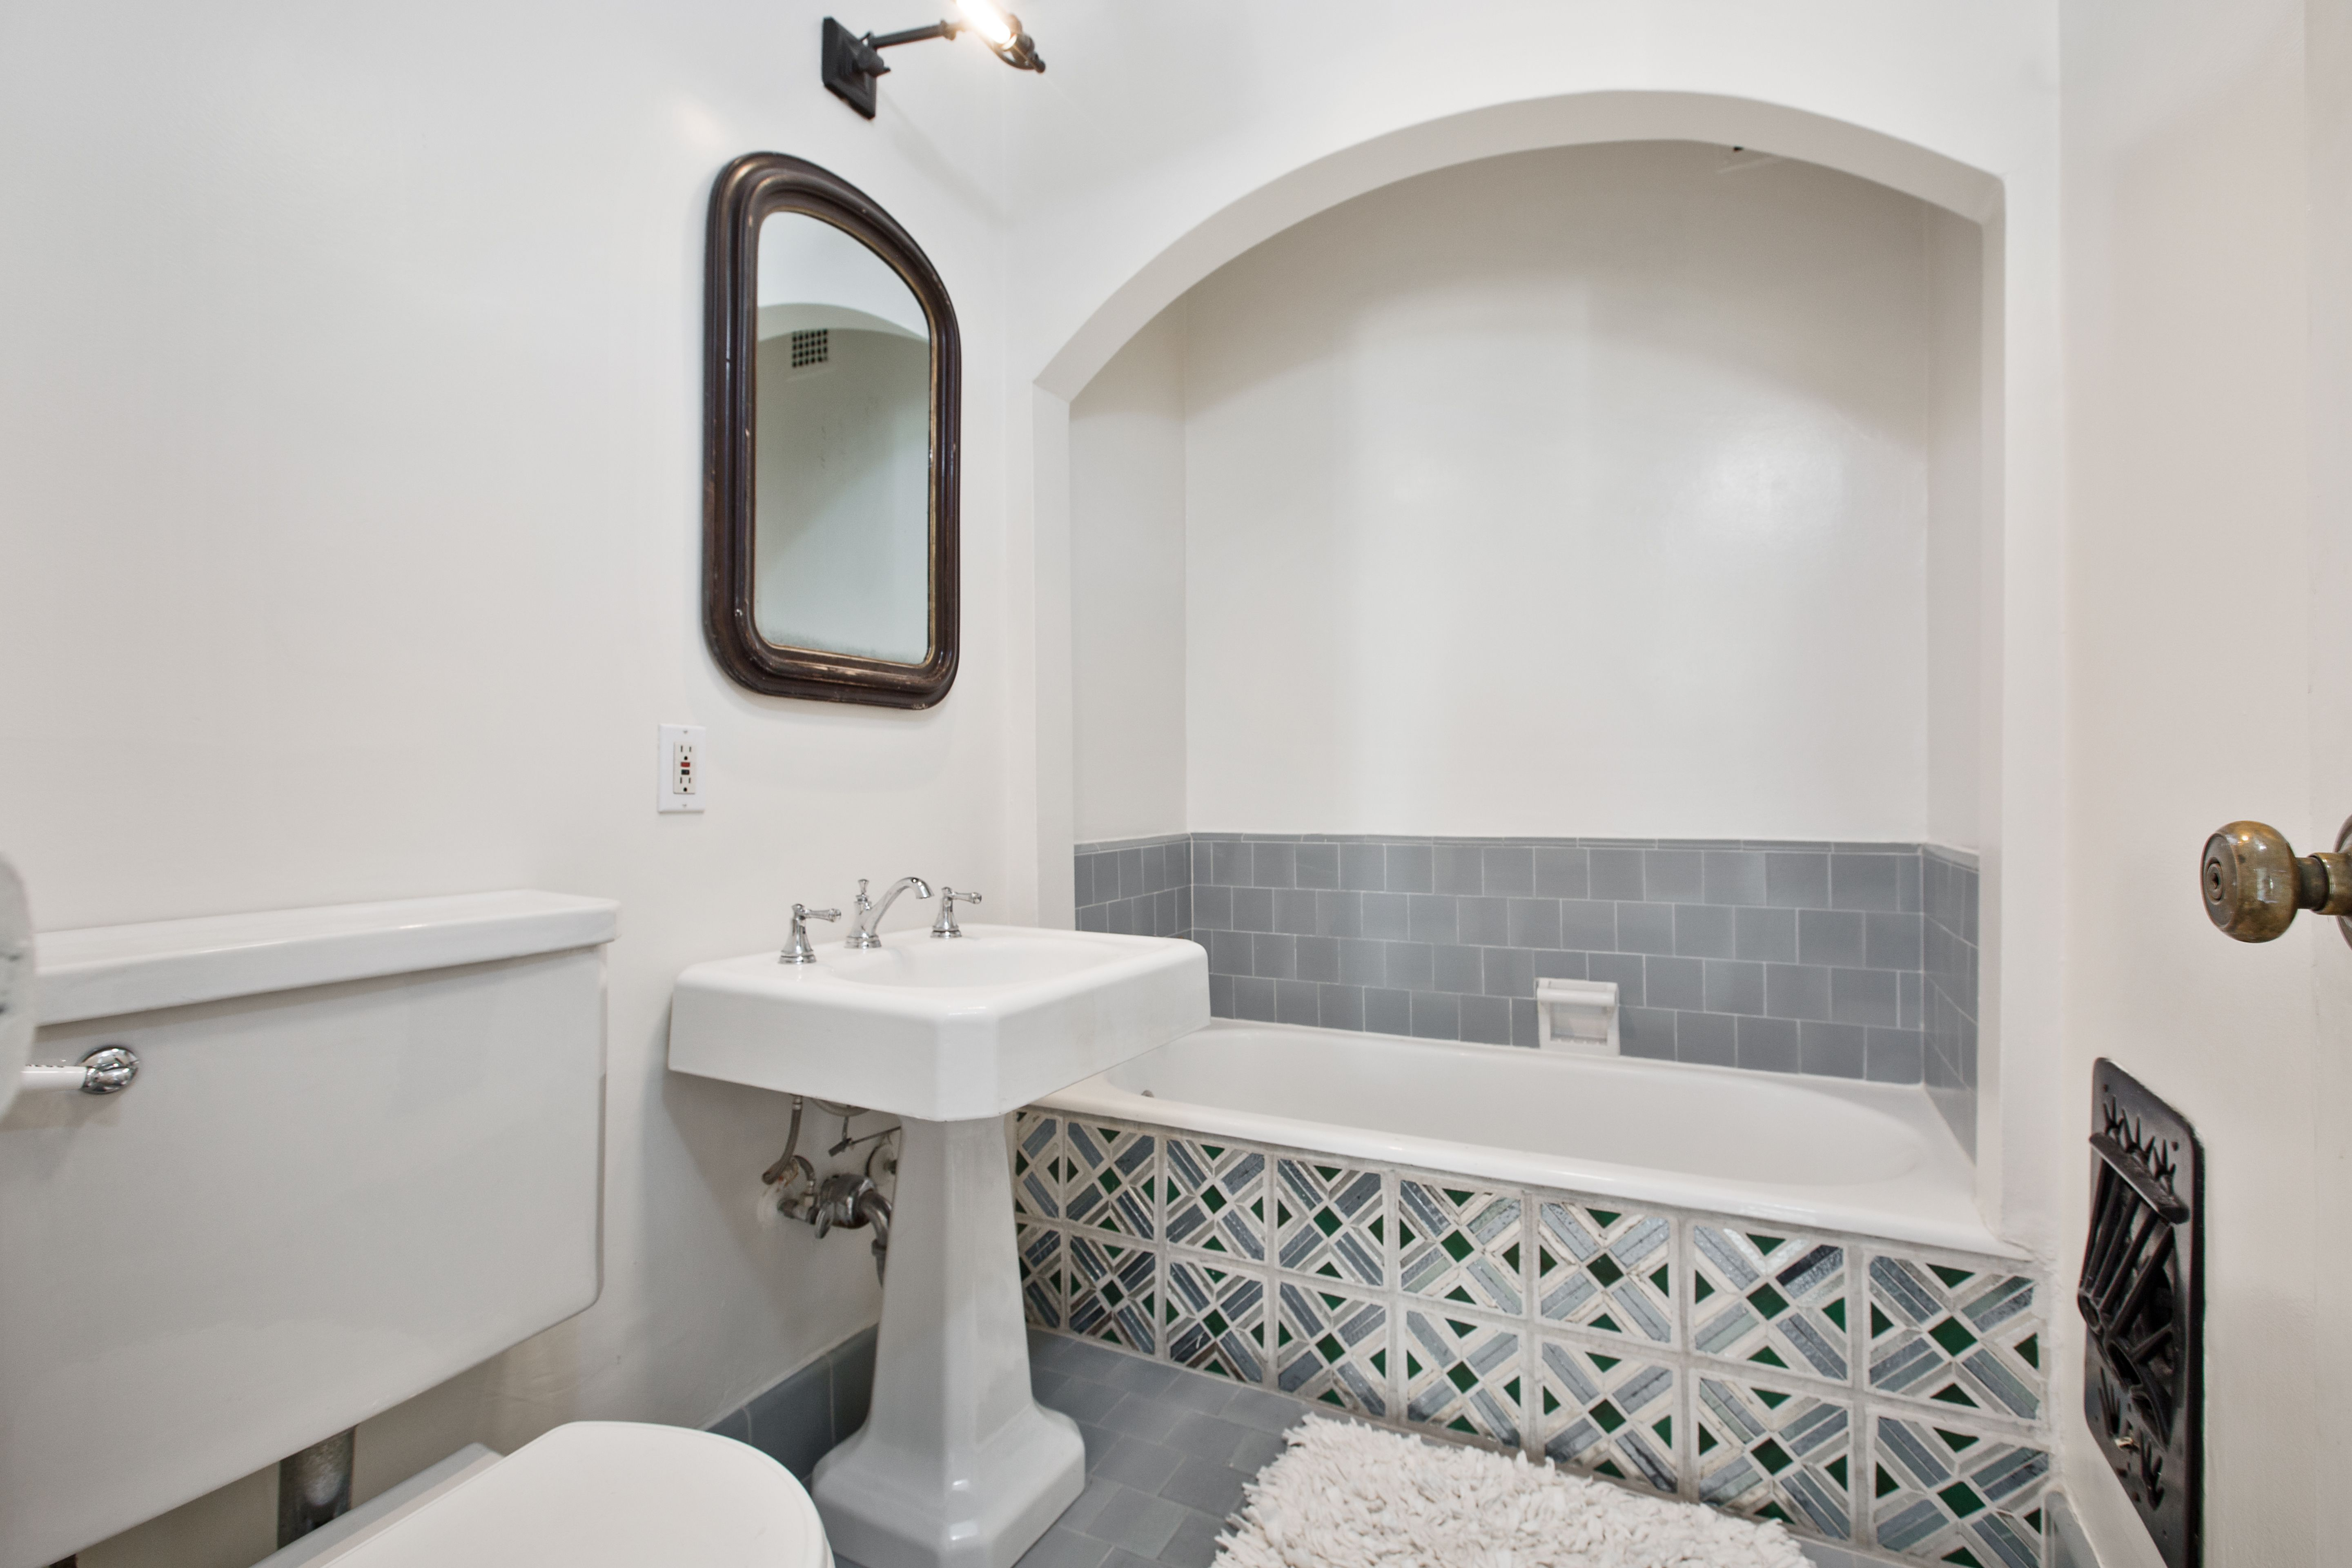 Bathroom with tile tub. Rent in West Hollywood s historic Colonial House for  5 500